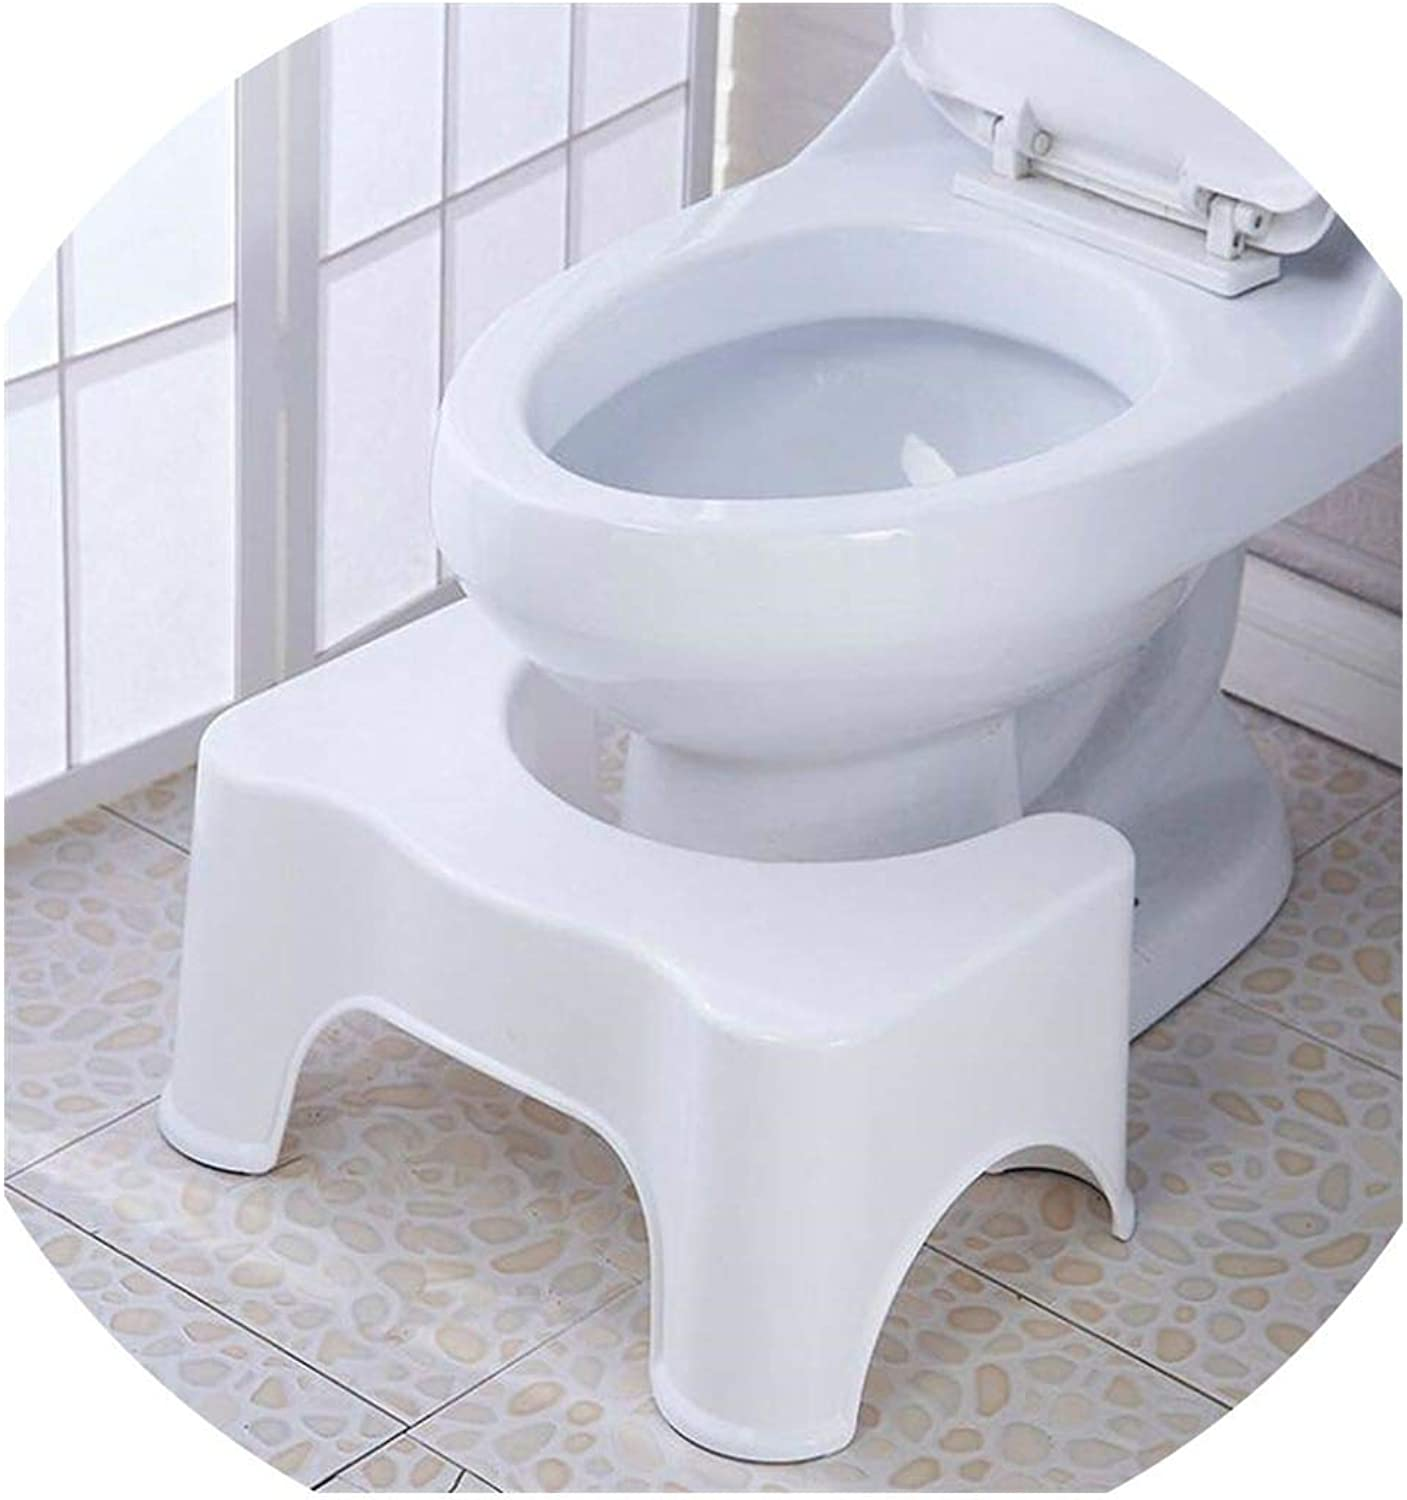 New Qualified Squatty Bathroom Thicken Folding Portable Stools Toilet Stool Step Footstool Piles Relief Aid Safety Folding Stool,White